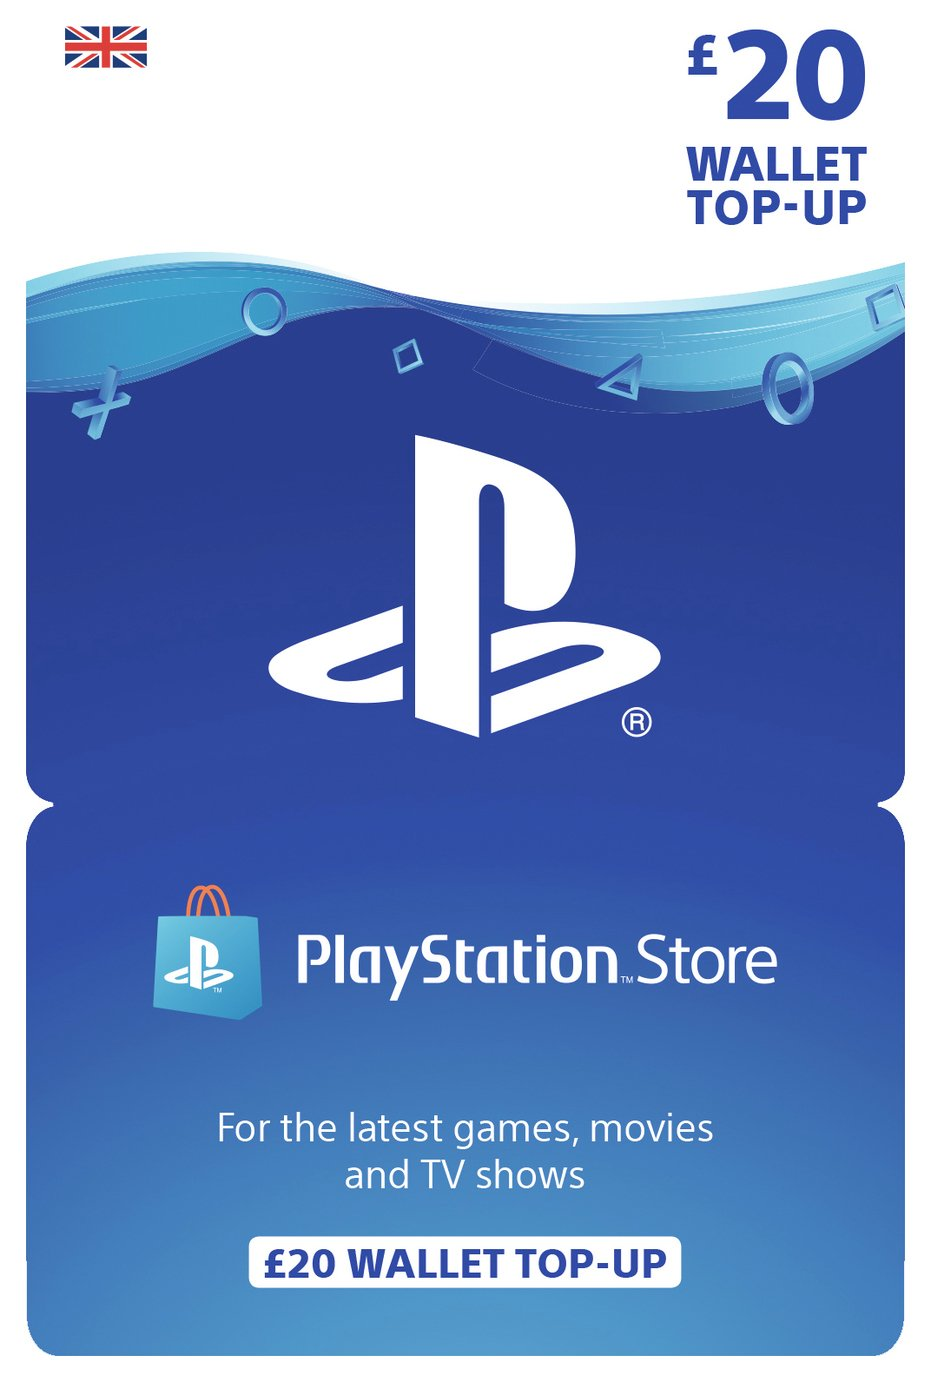 Image of Playstation Plus PSN ??20 Gift Card